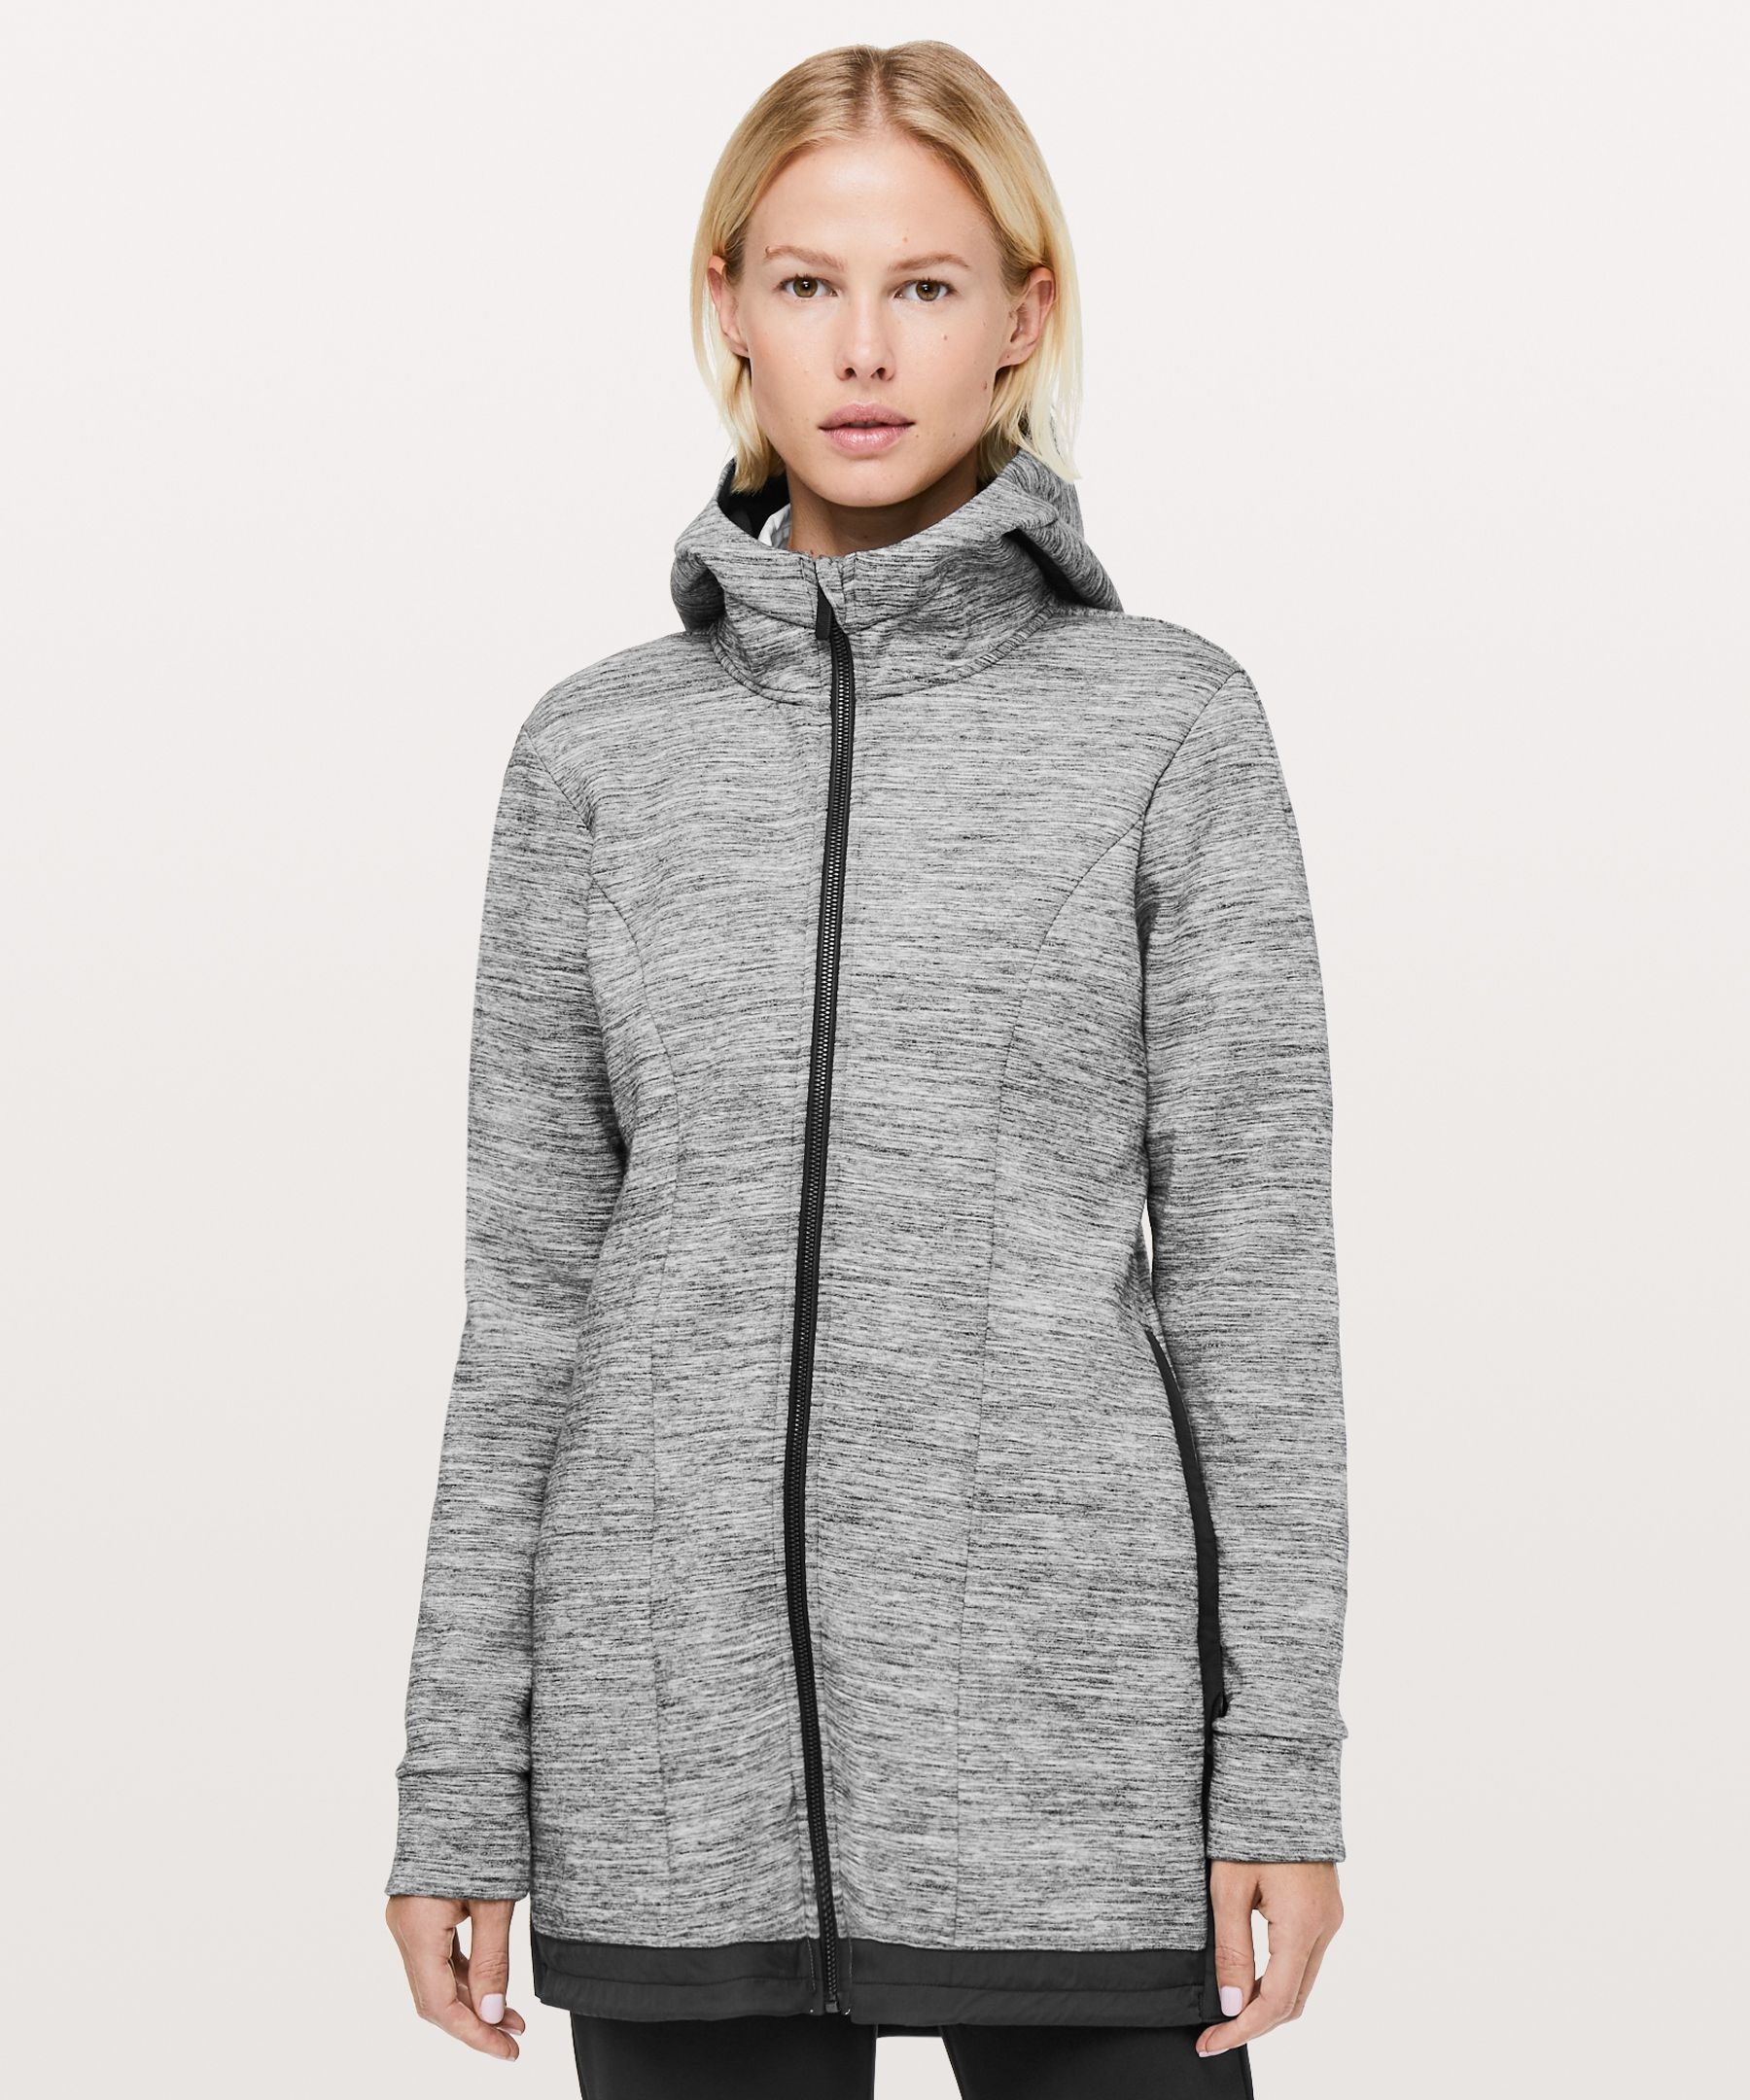 Pick Your Path Jacket by Lululemon